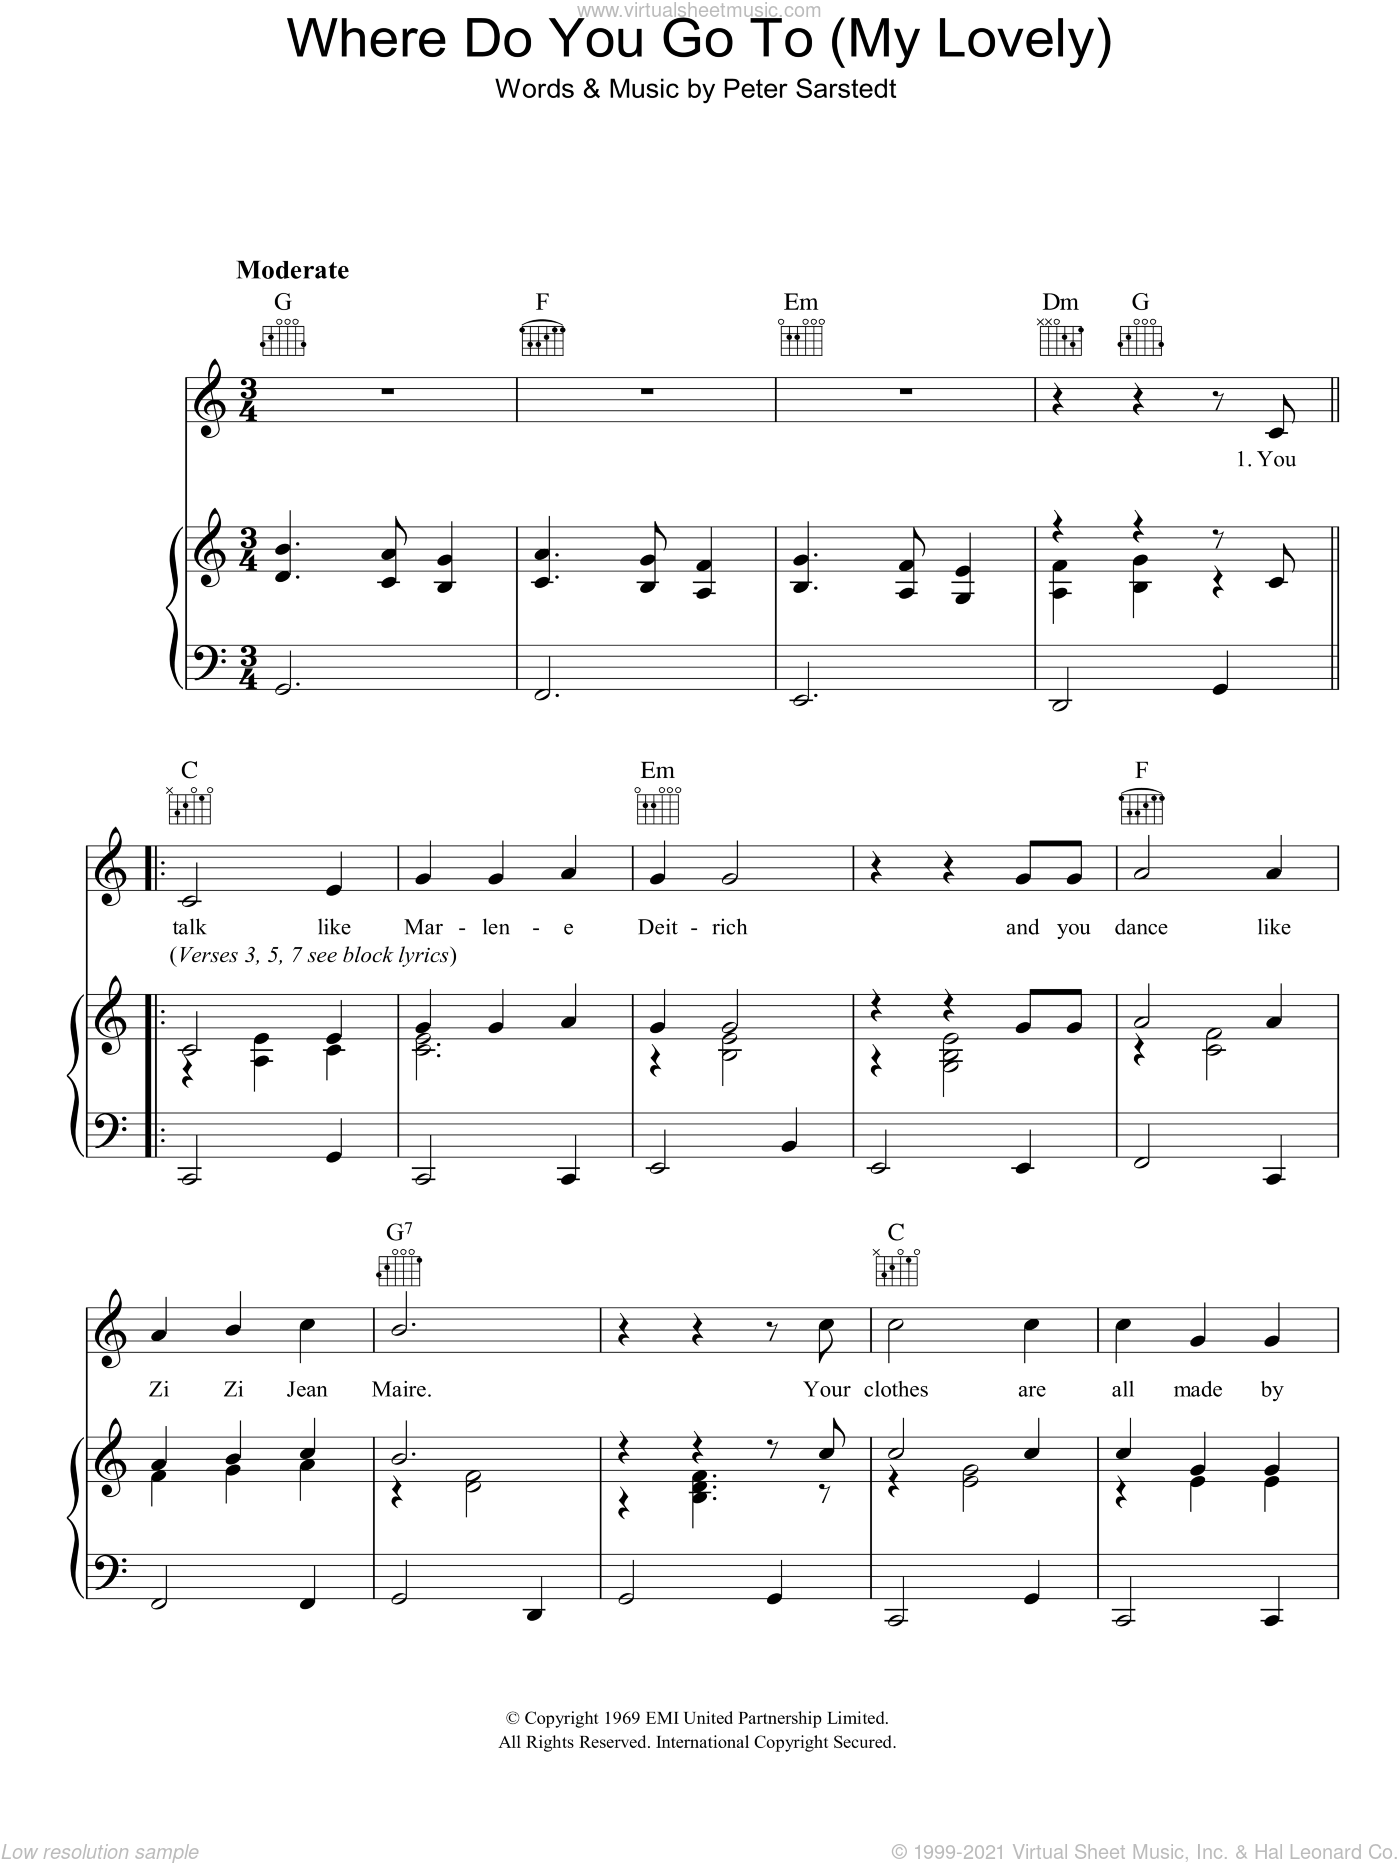 Where Do You Go To (My Lovely) sheet music for voice, piano or guitar by Peter Sarstedt